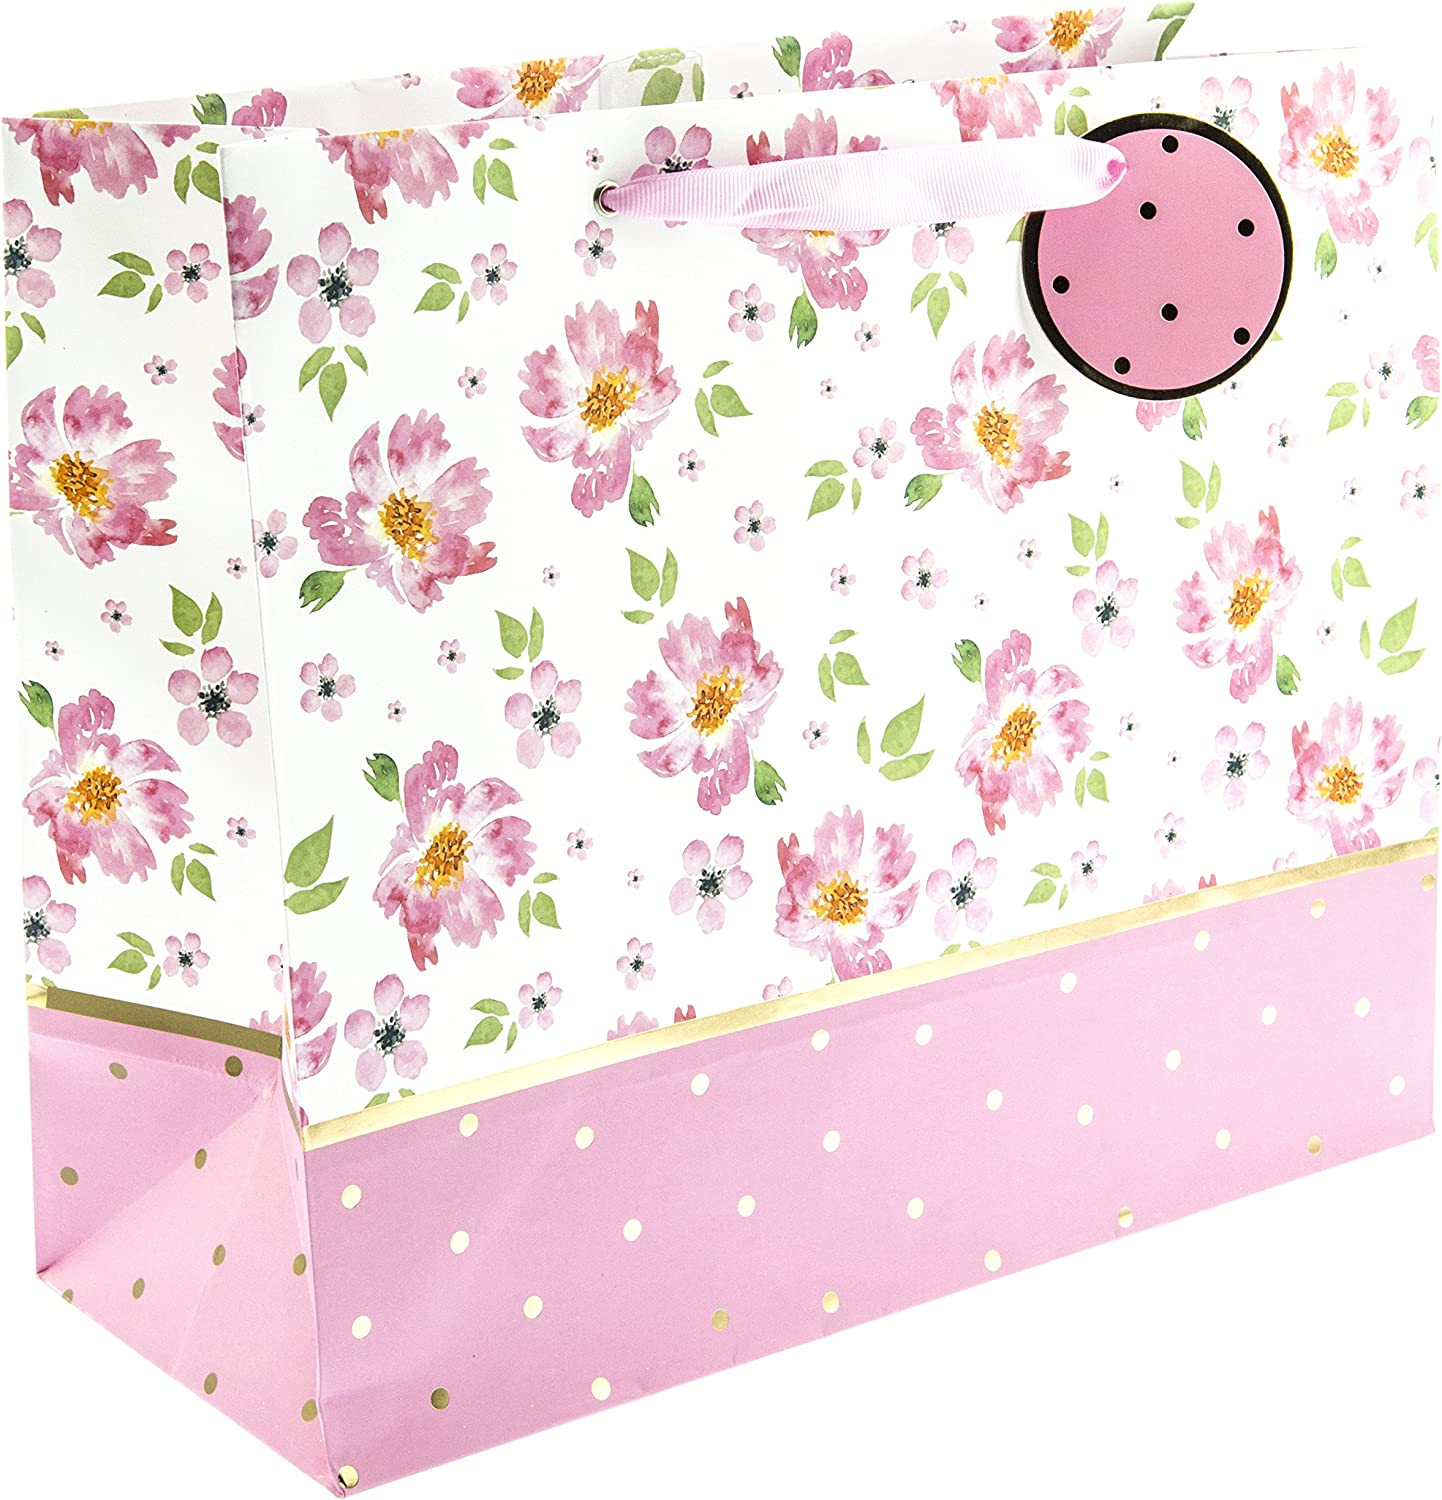 Graphique Animals Large Gift Bag Cute Animal-Patterned Gift Bag Embellished with Glitter Includes Grosgrain Pink Ribbon Handles and Coordinating Gift Tag 12.5 x 10.5